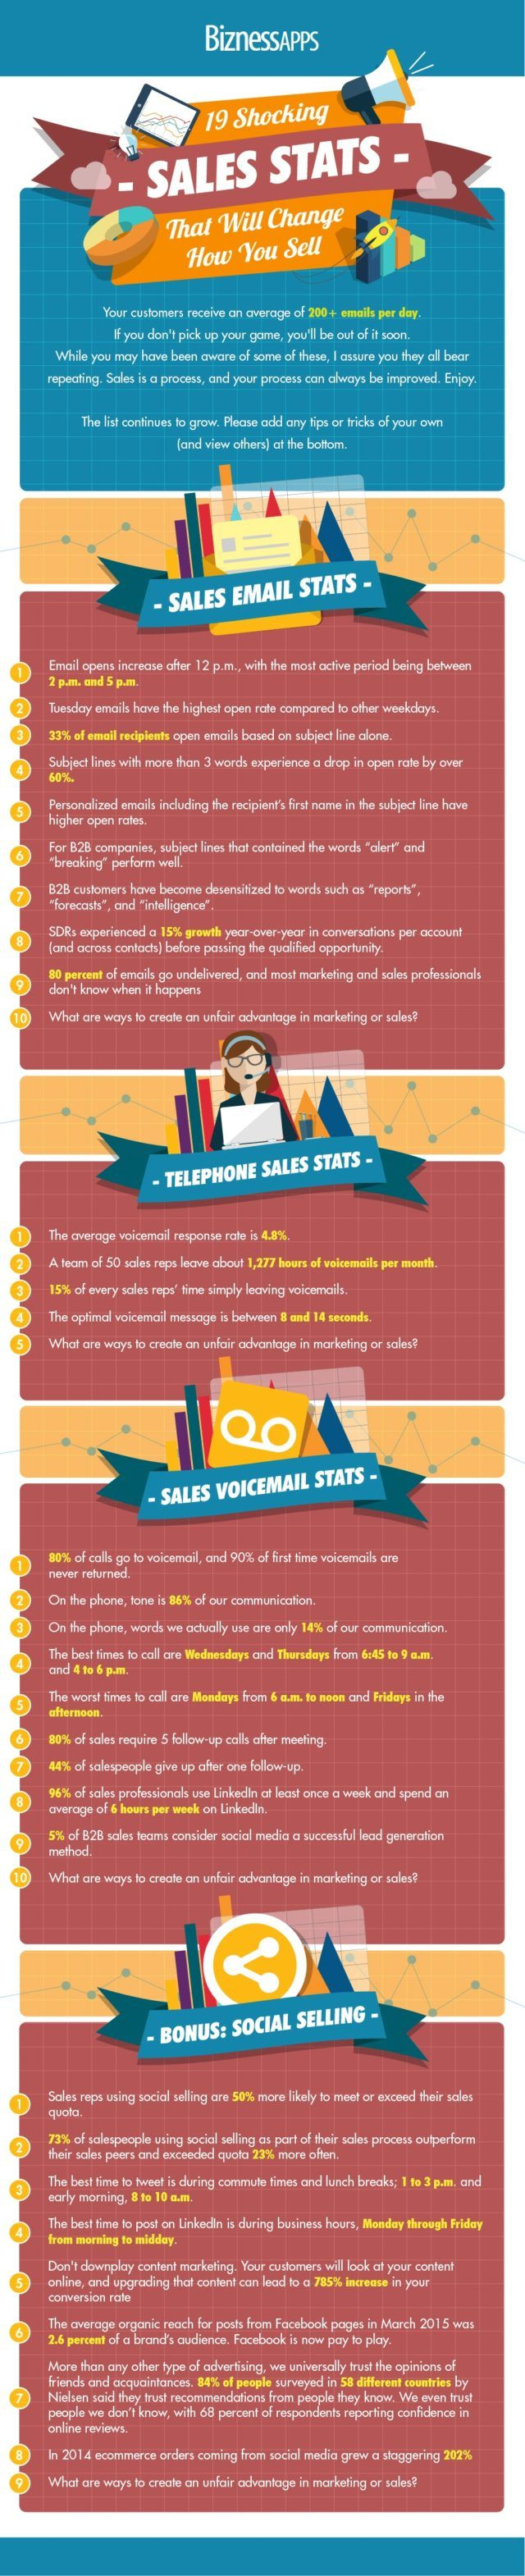 19 Shocking Sales Stats That Will Change How You Sell